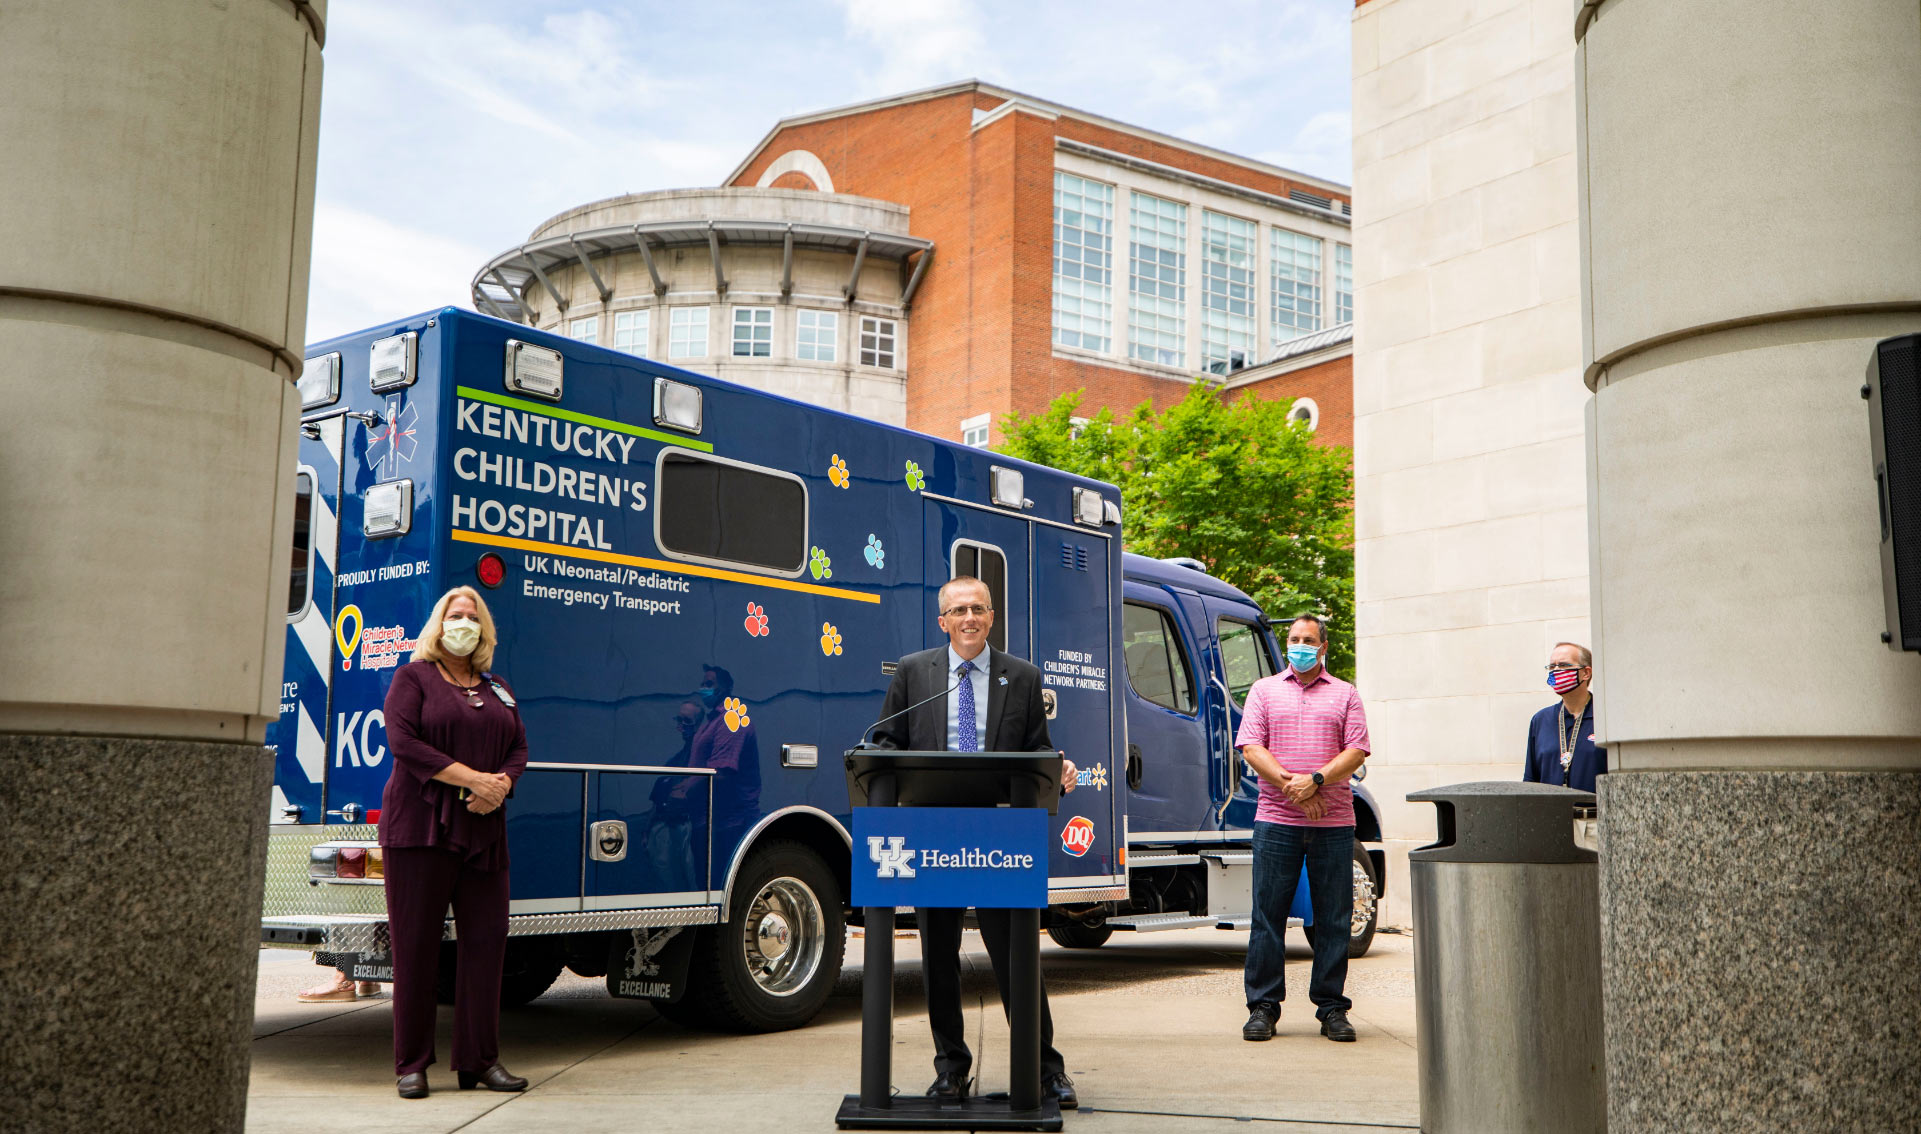 Standing behind a podium outside of the hospital in front of a blue Kentucky Children's Hospital ambulance—Dr. Day prepares to speak to his colleagues and the community. He is dressed in a black suit with a blue shirt and blue tie.